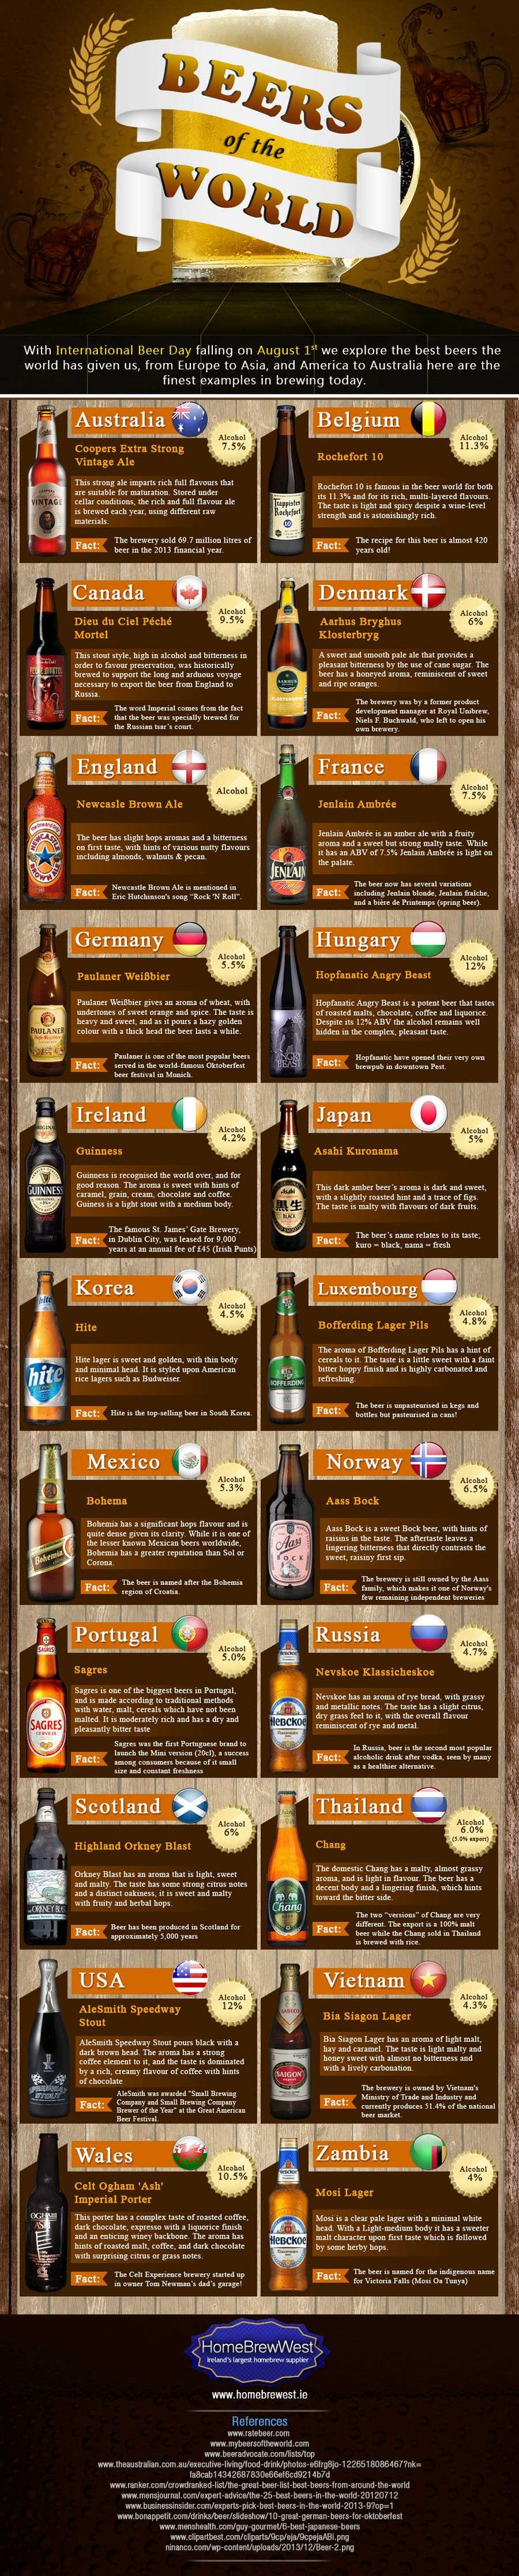 """Brian O'Shea from HomeBrewWest Ireland sent us this infographic. With International Beer Day taking place today, August 1st, we decided to celebrate the great beers across the globe in our infographic """"Beers of the World""""."""